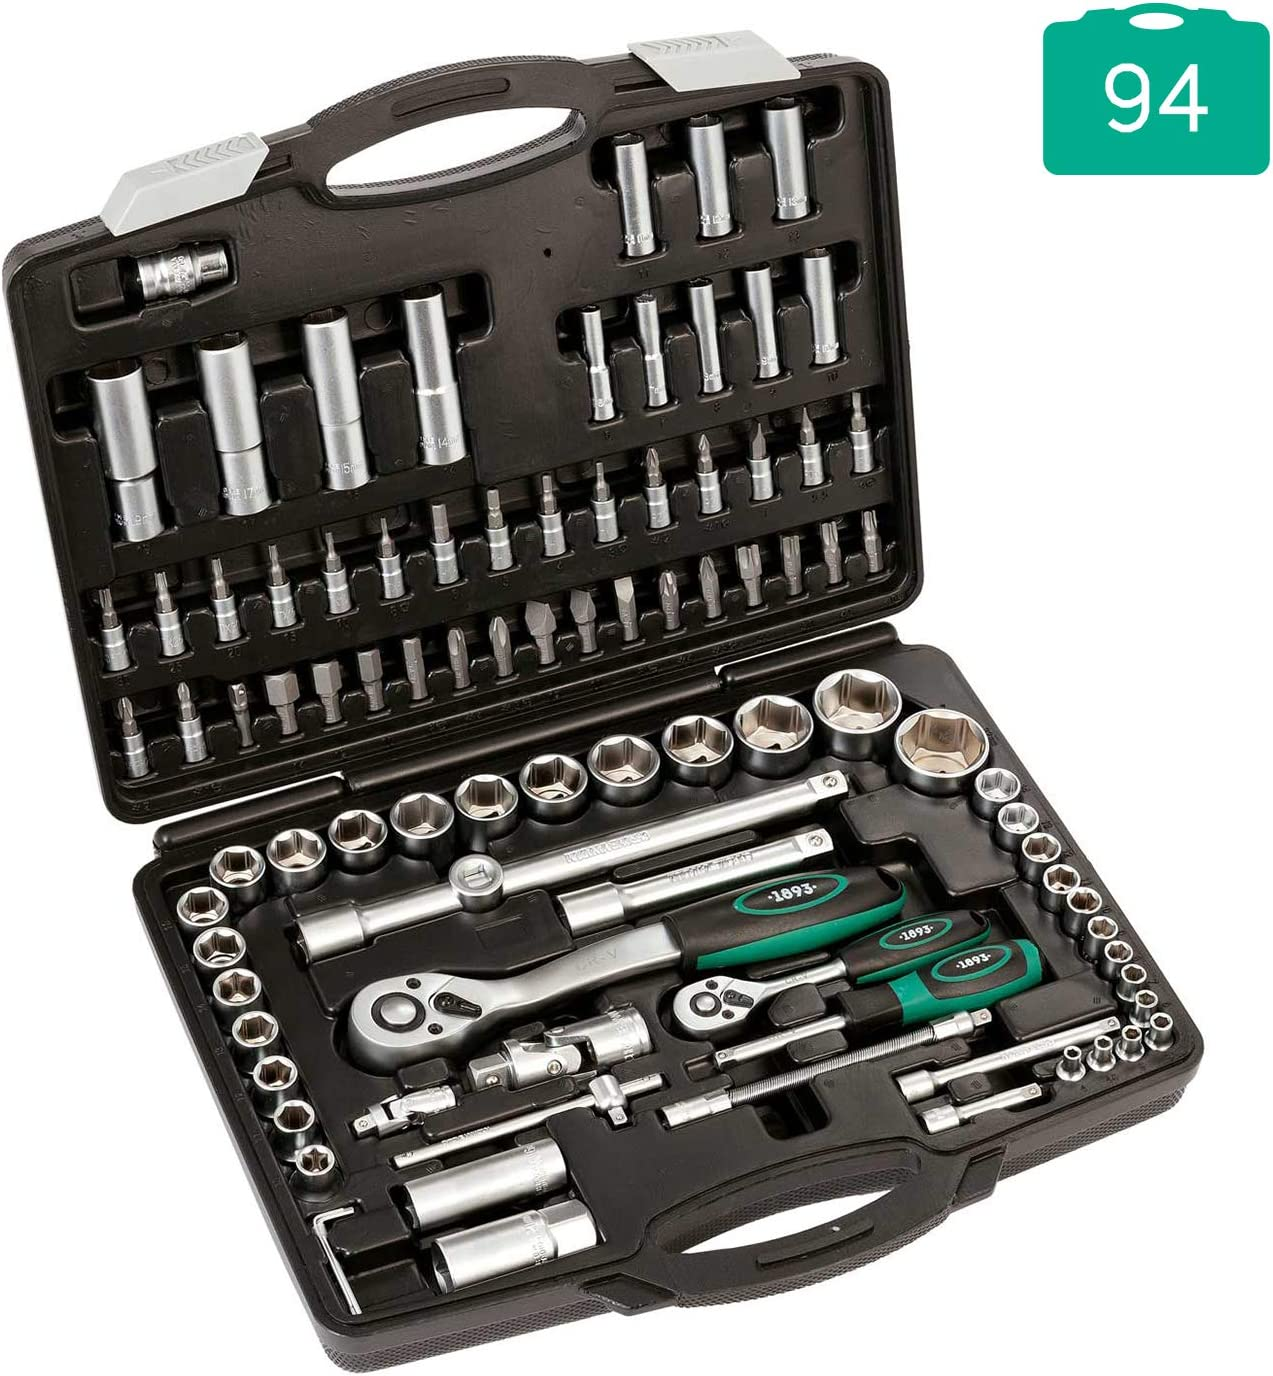 "HILKA SOCKET SET METRIC 94 PIECE 1//2/"" 1//4/"" DRIVE RATCHET SOCKETS TOOL KIT"